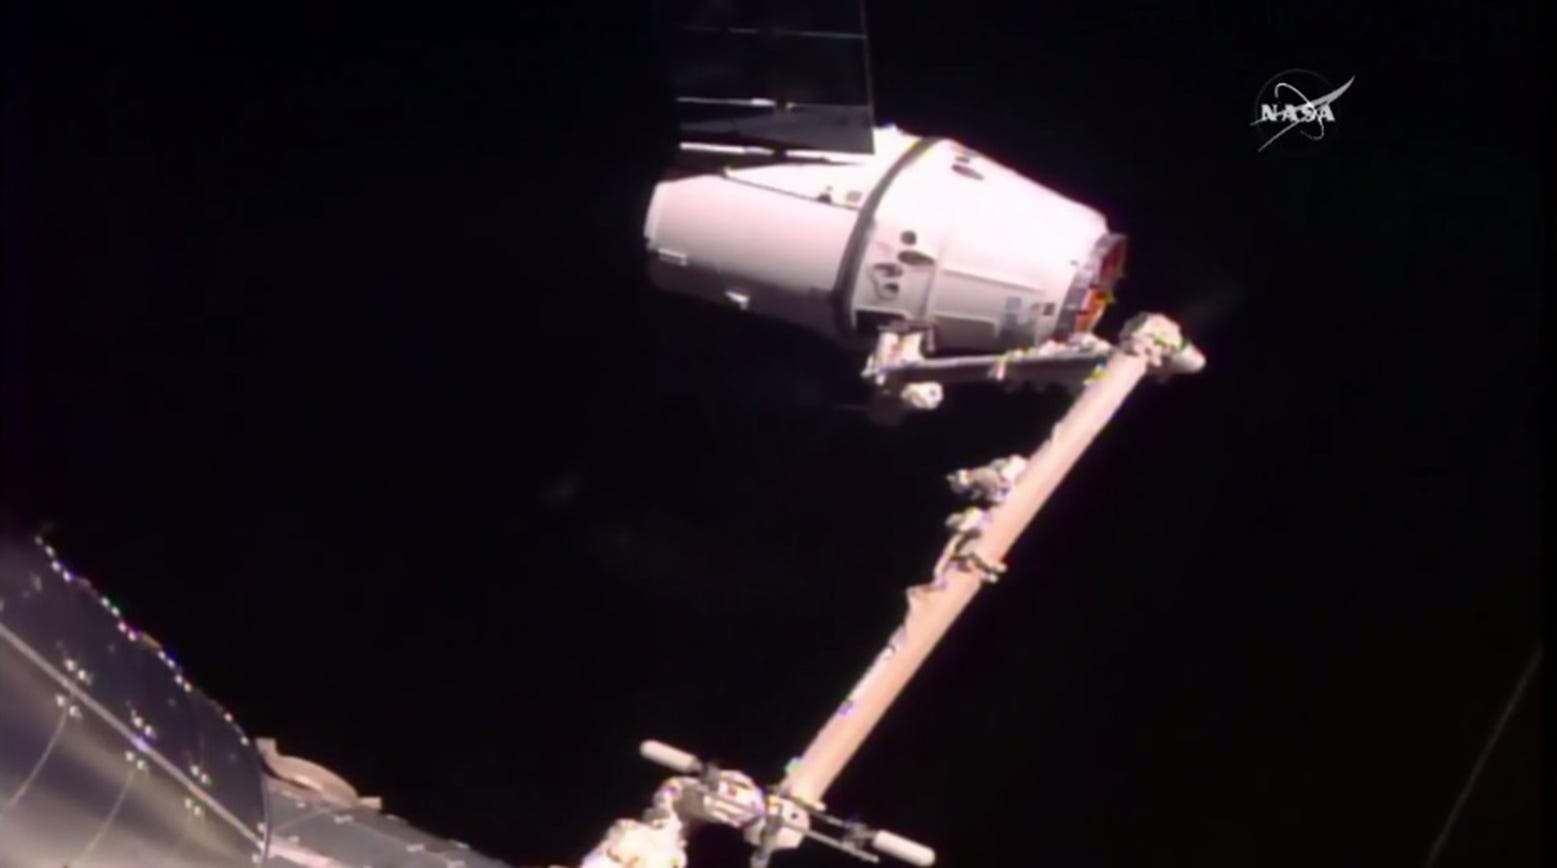 SpaceX cargo ship arrives safely at space station